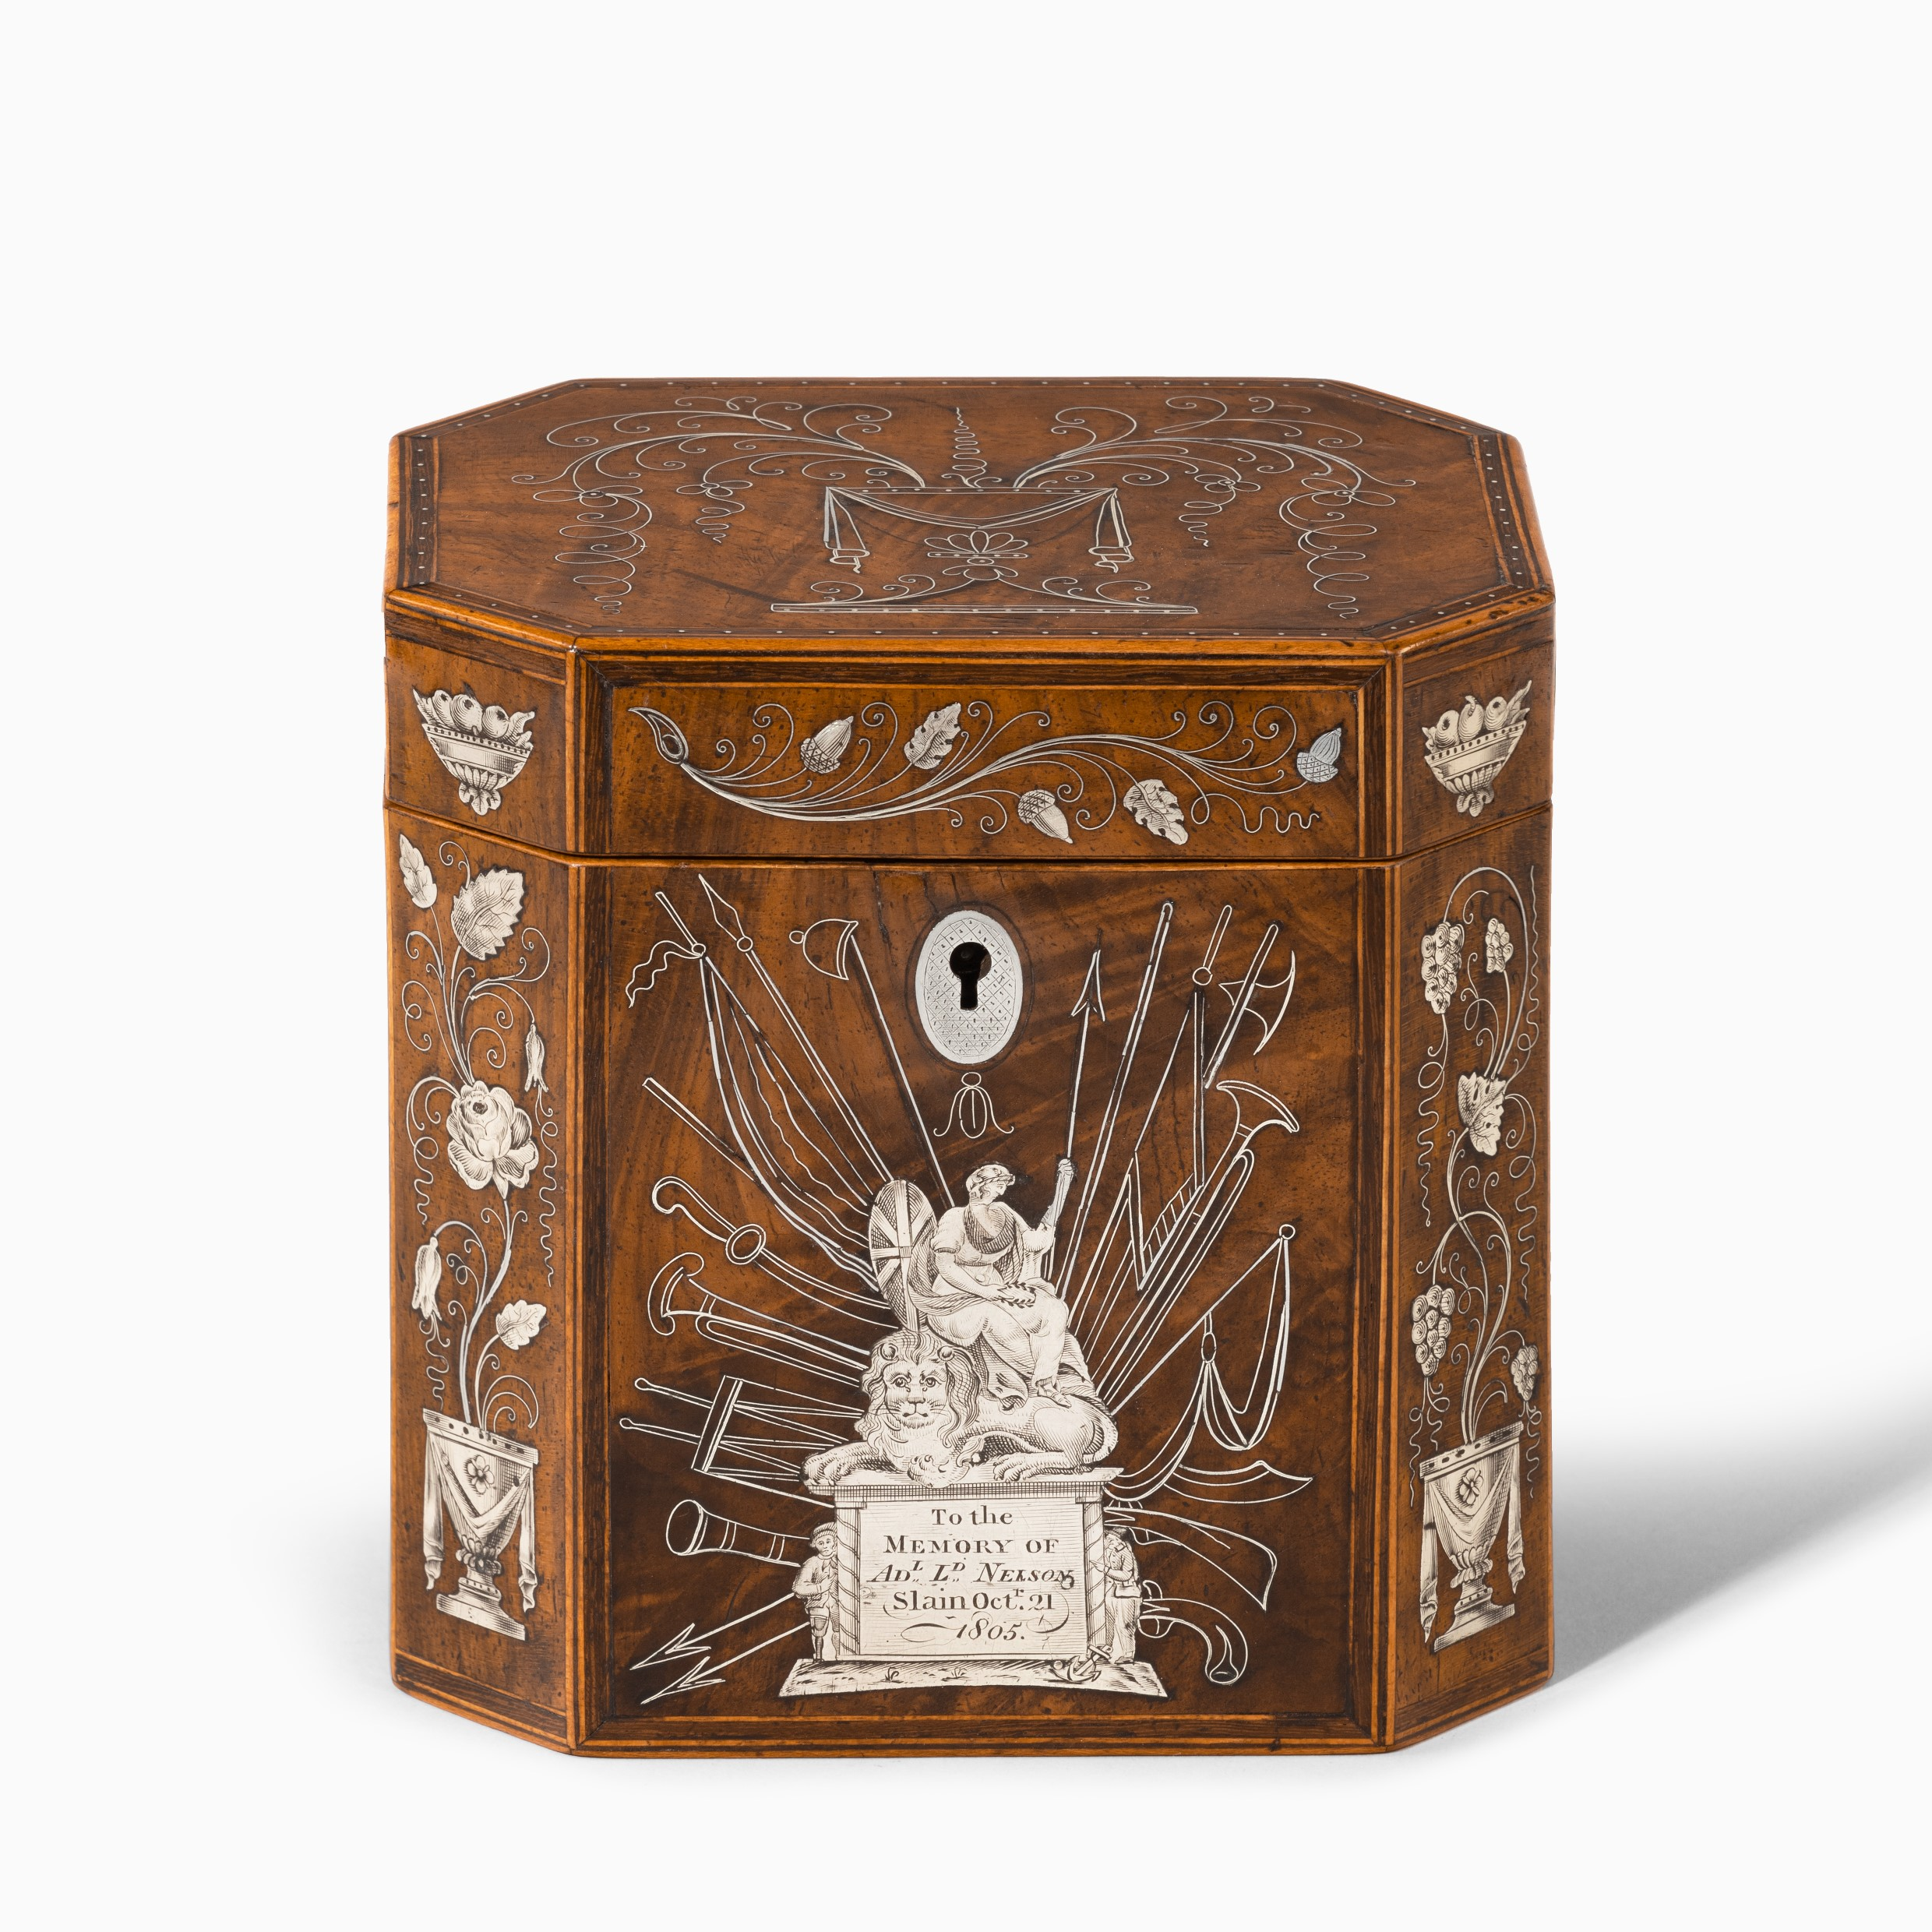 A silver-inlaid caddy commemorating the death of Admiral Lord Nelson